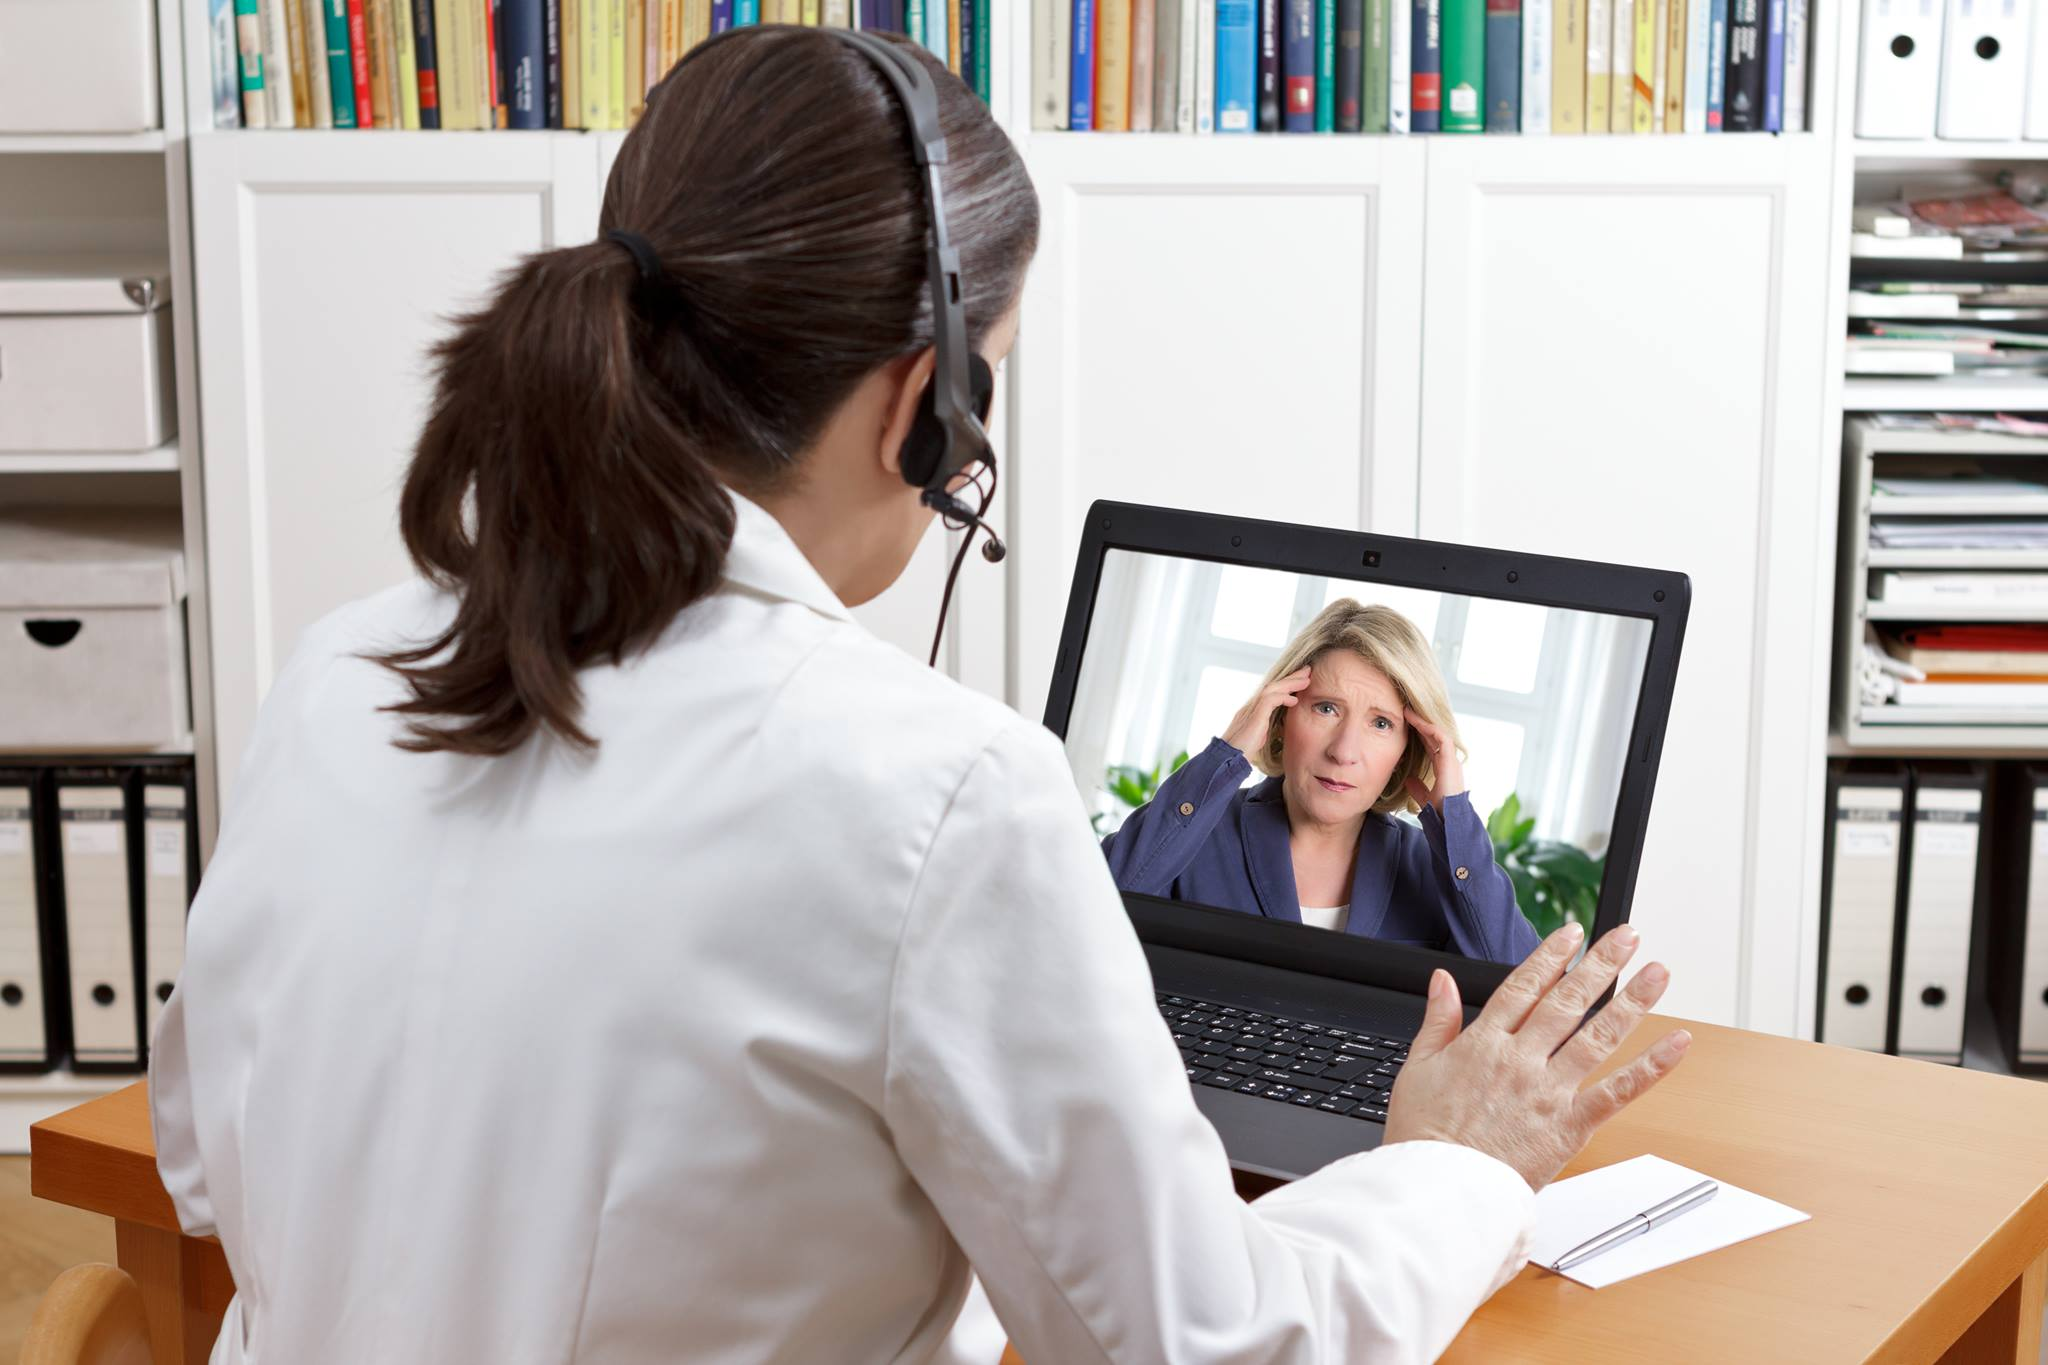 A Baptist Health employee on a video call or interview for a careers in nursing in Arkansas